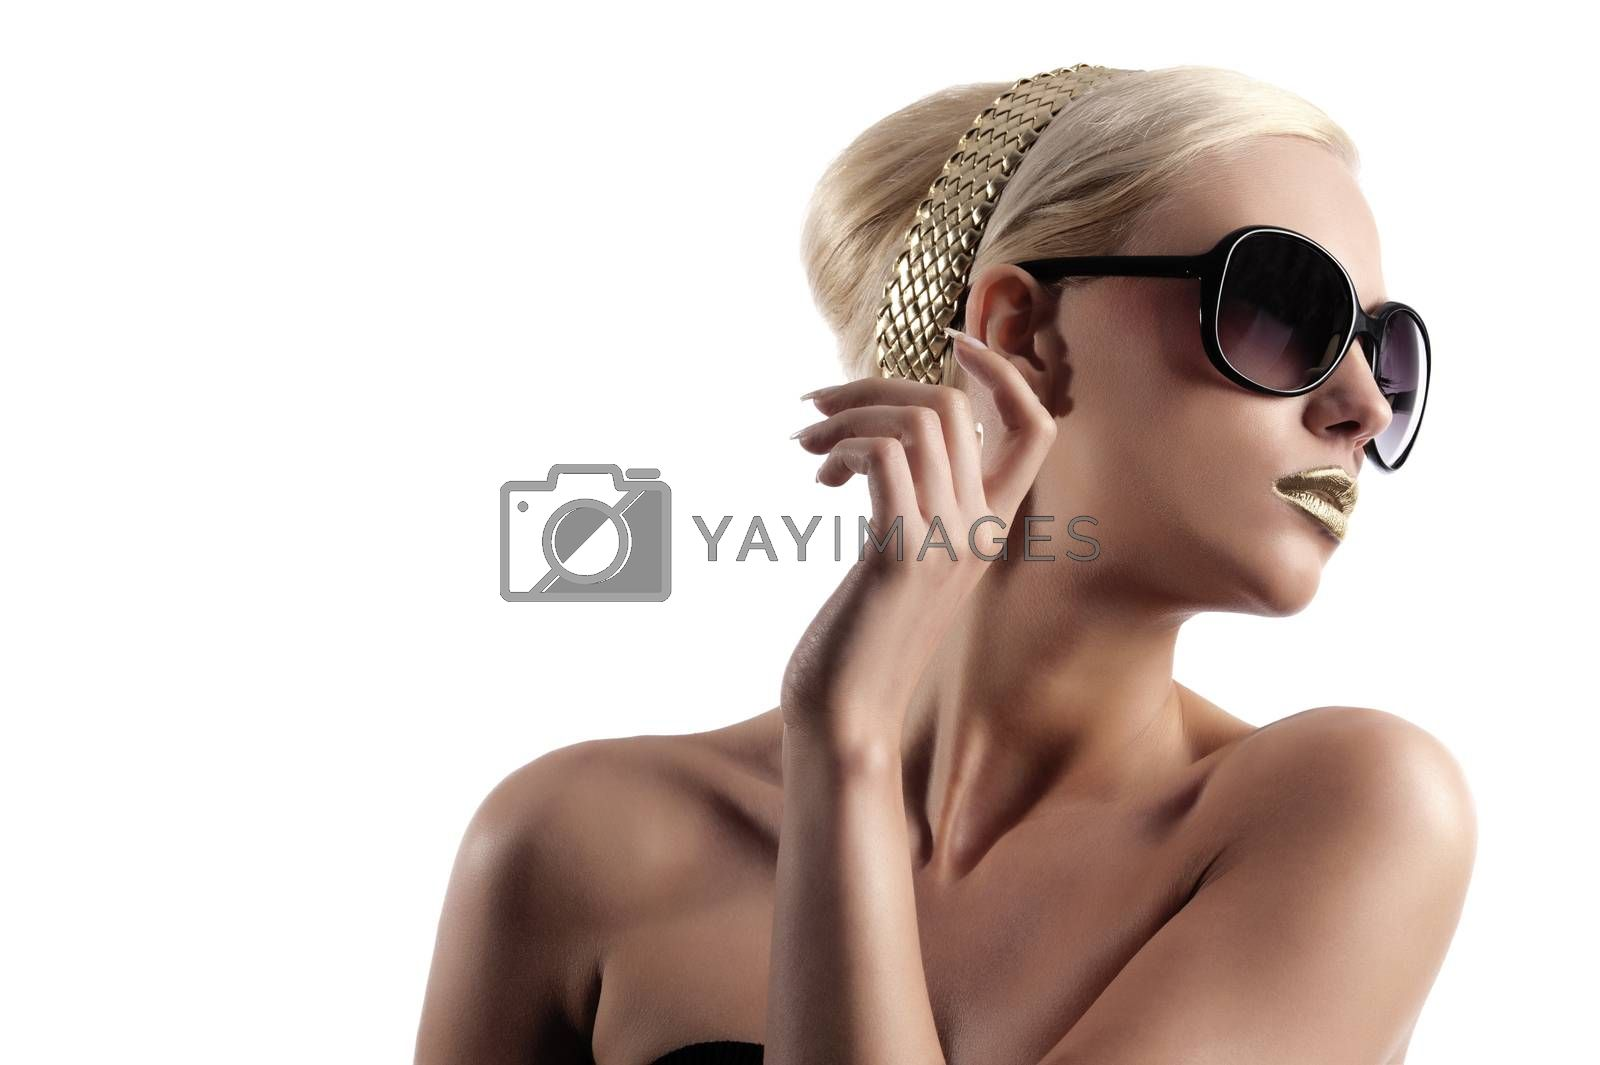 Royalty free image of fashion shot of blond woman with sunglasses on by fotoCD